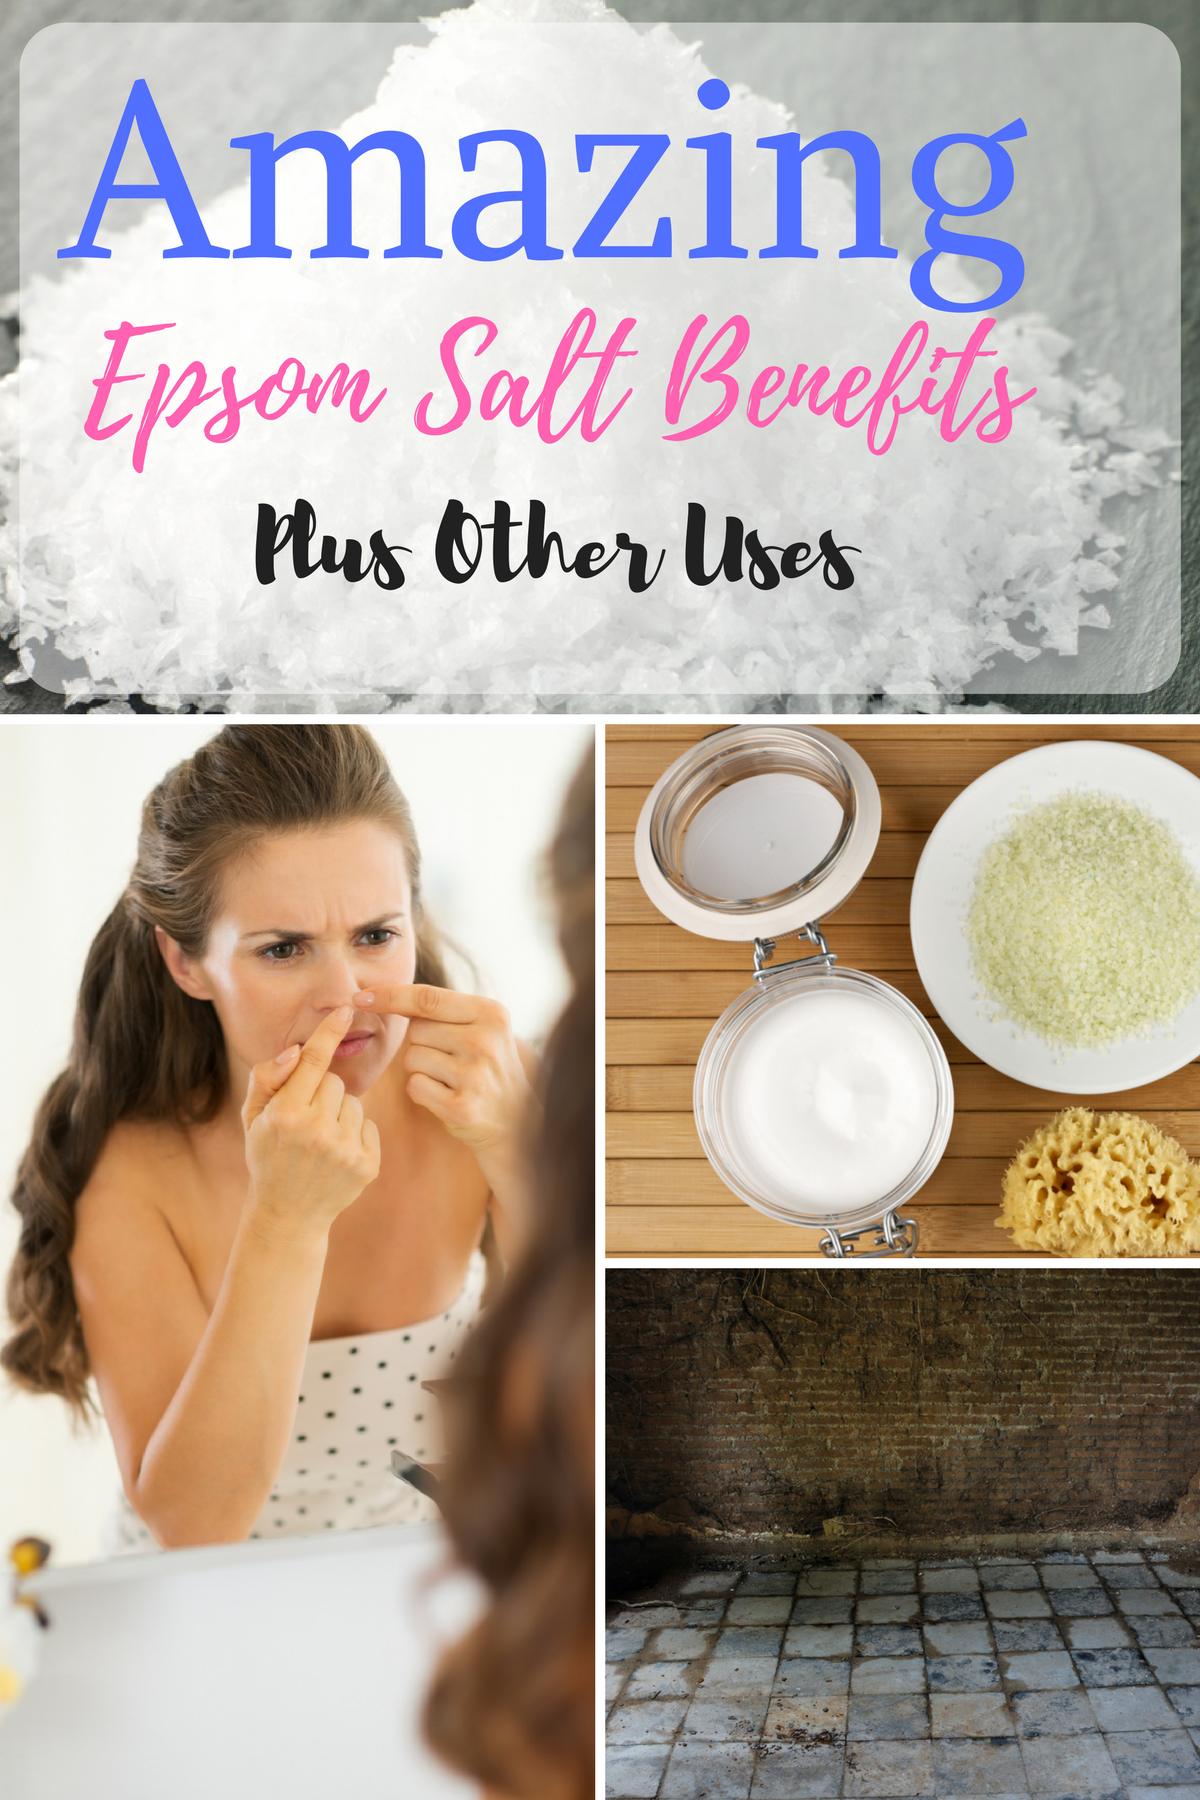 Epsom salt is great for soothing your sore muscles when doing an Epsom salt bath but did you know that you can use it in other areas of your home? I want to share some great Epsom salt benefits and uses. #hacks #epsosalt #naturalremedies